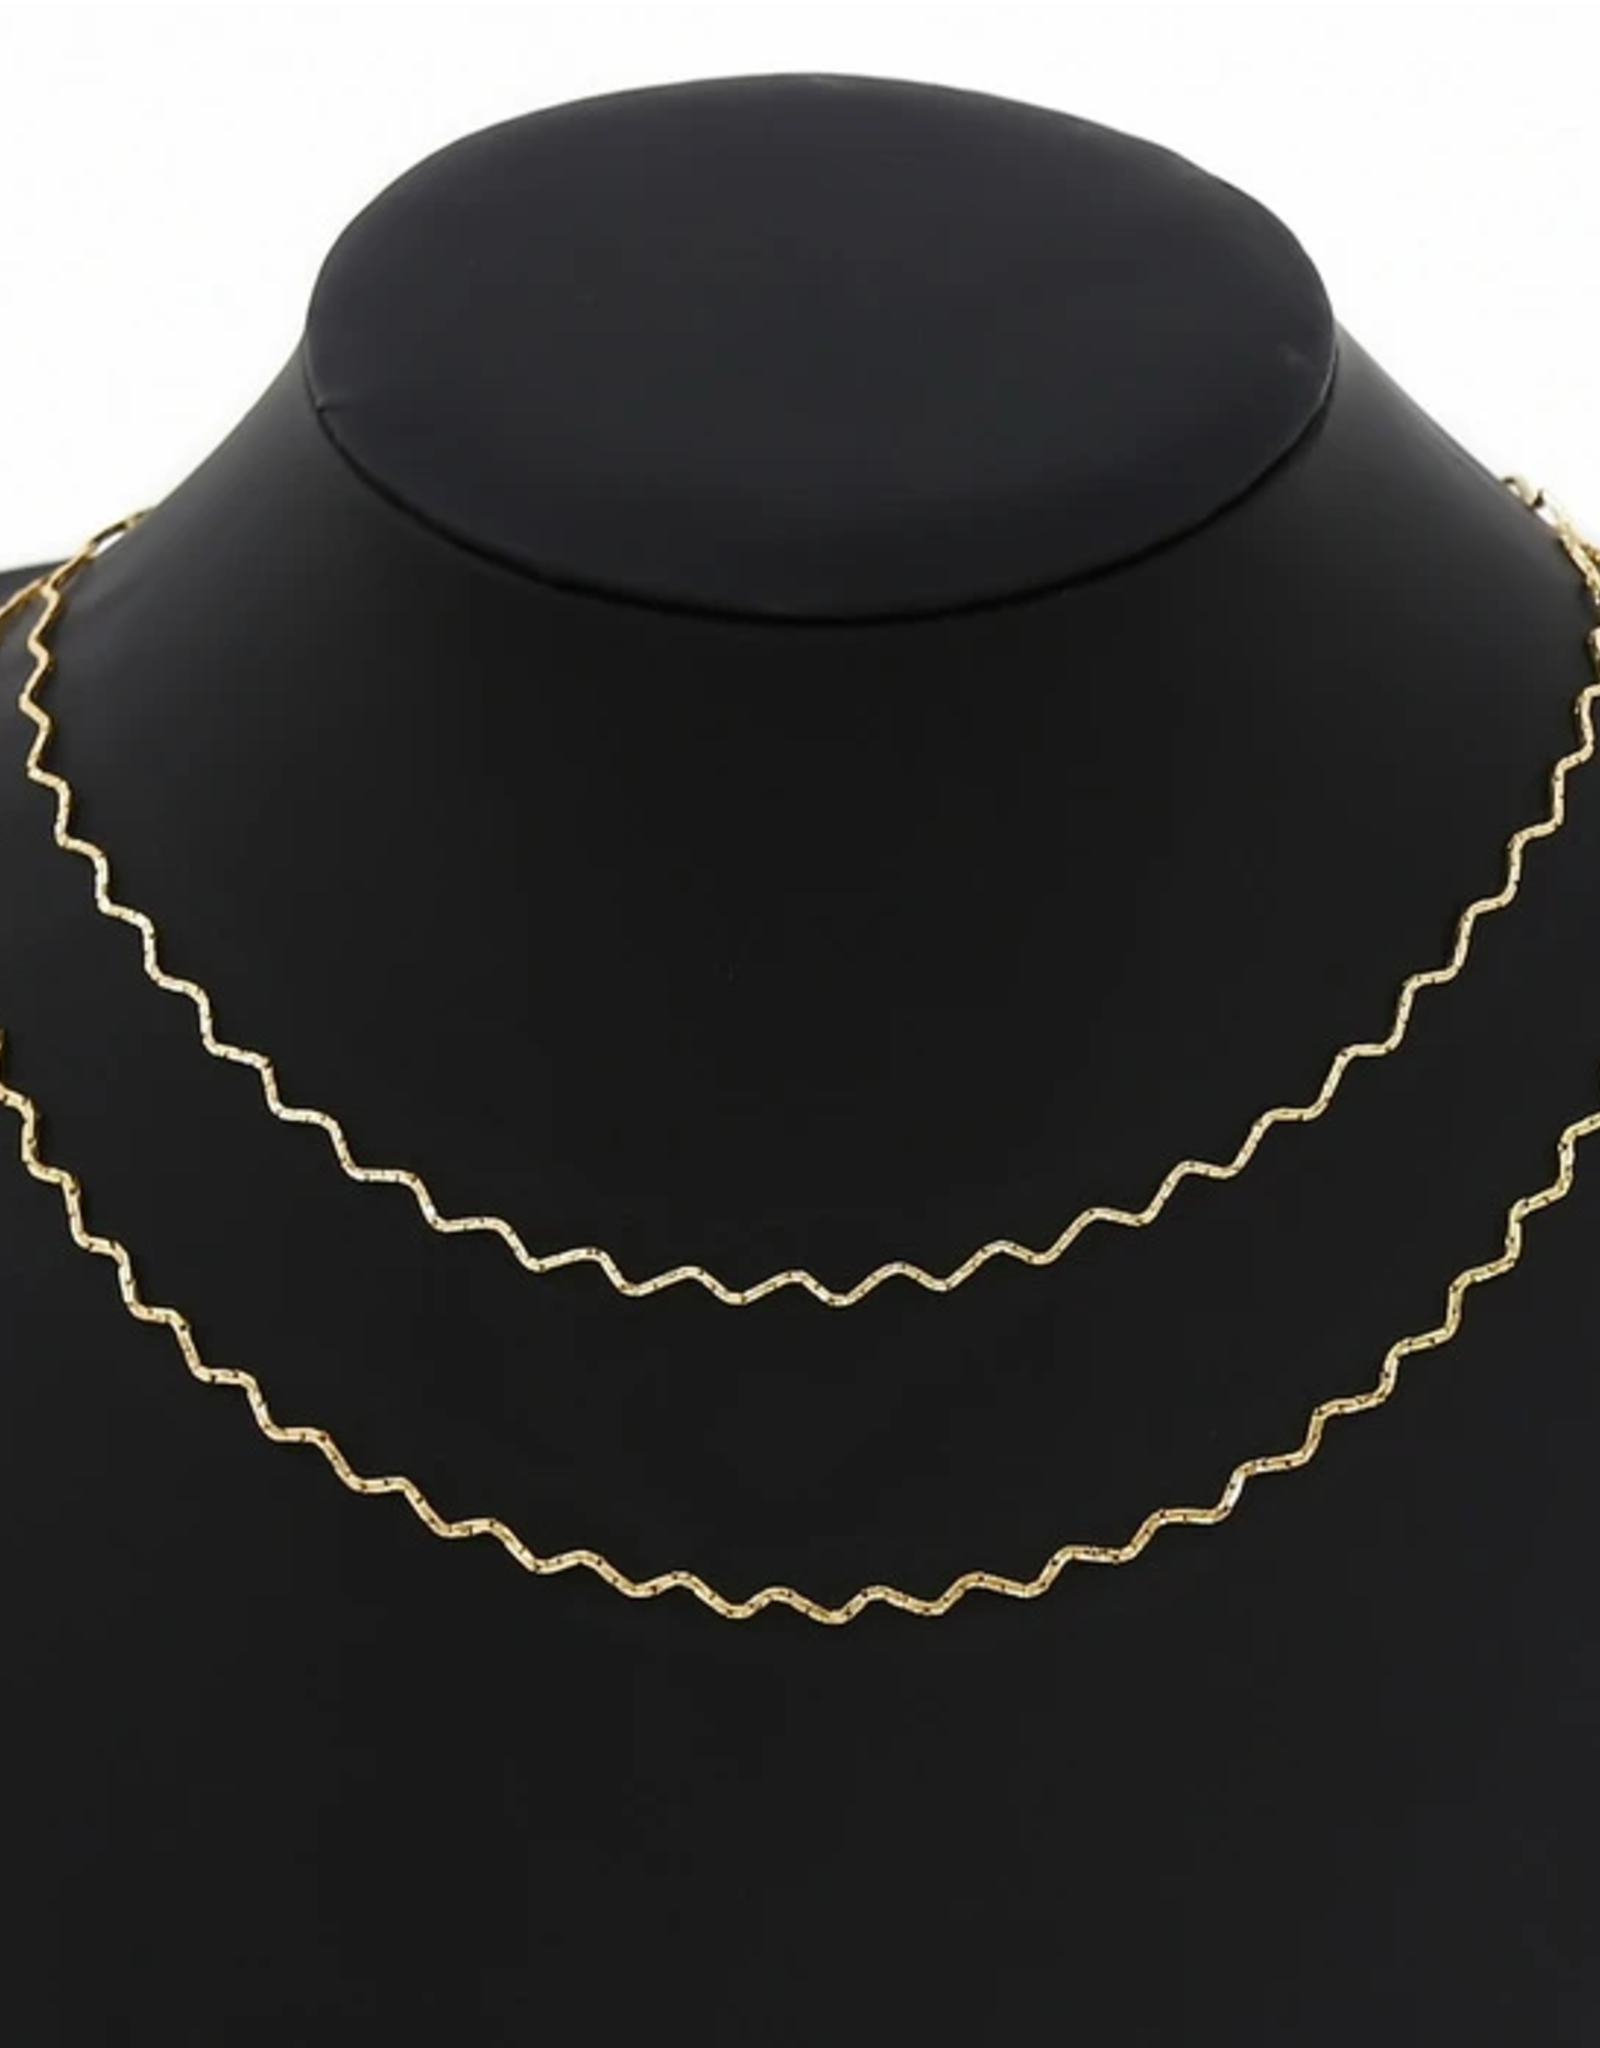 Blue Suede Jewels Wave Layered Simple Chain Necklace